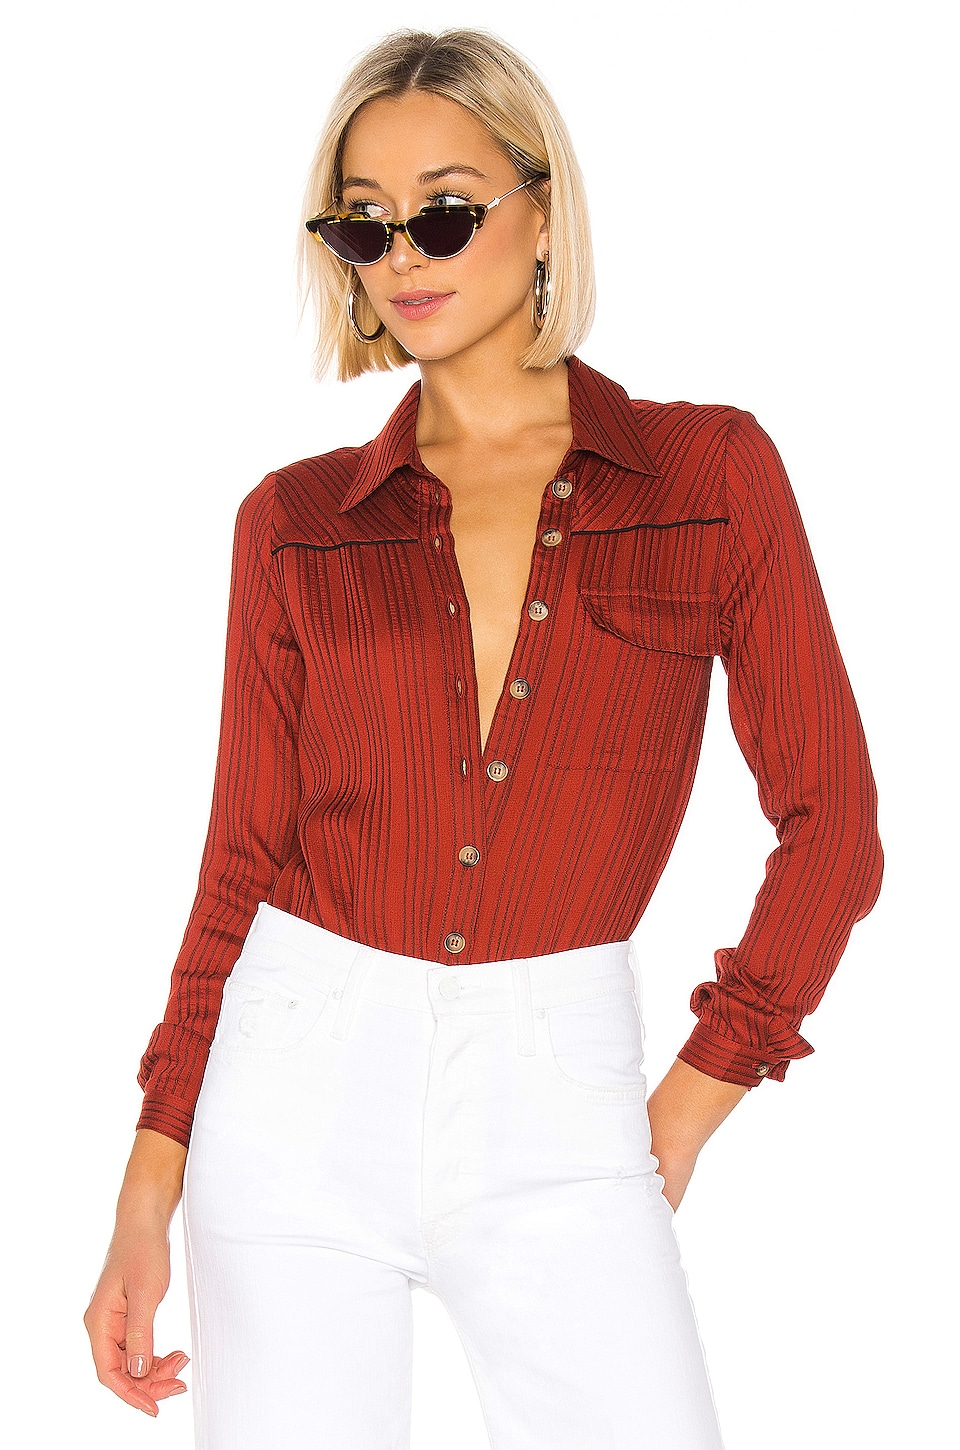 House of Harlow 1960 x REVOLVE Selma Bodysuit in Spice Red